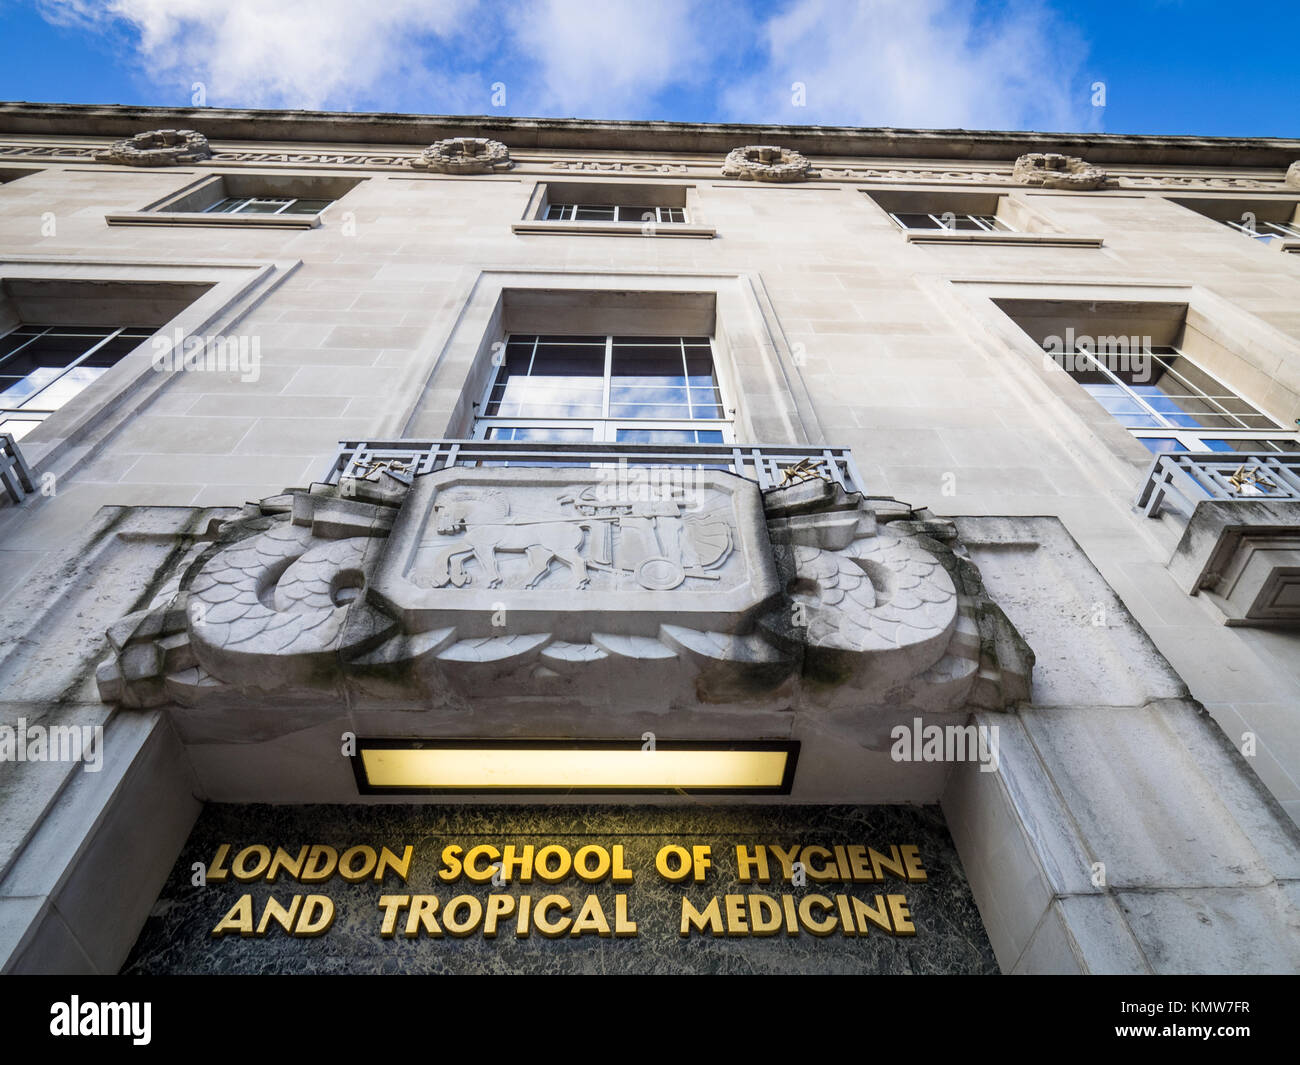 London School of Hygiene & Tropical Medicine, Bloomsbury, London. The art deco style building opened in 1929, architects Stock Photo